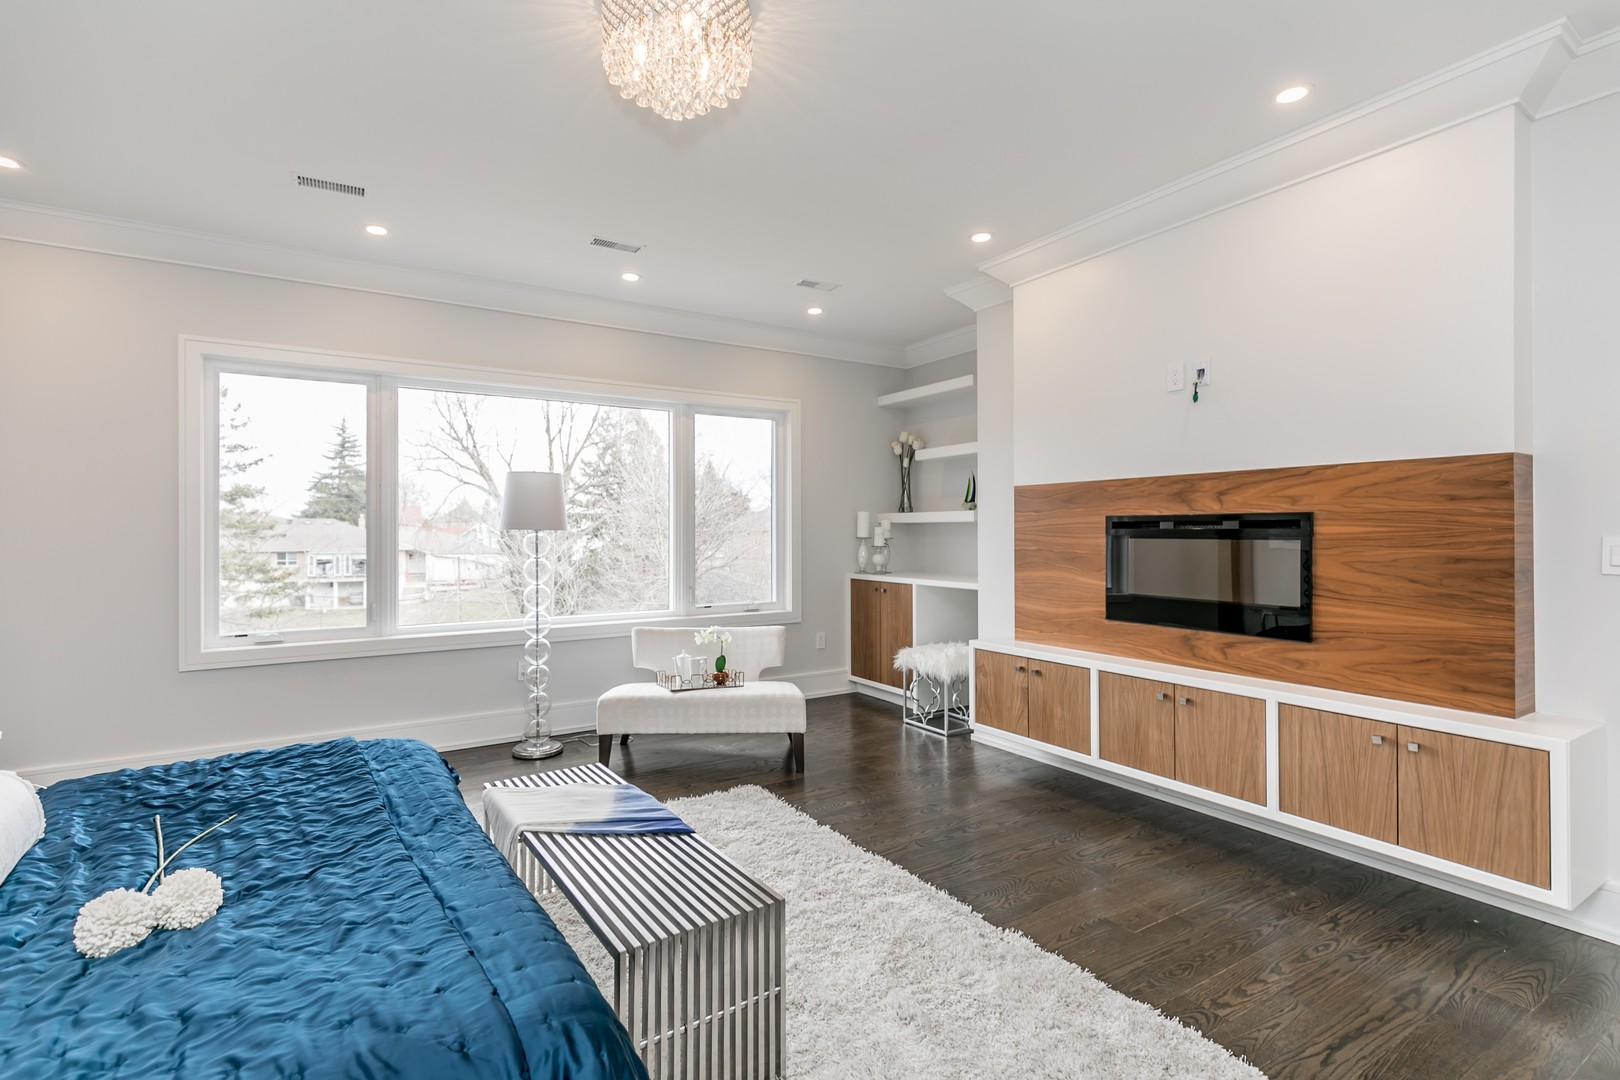 Bedroom View, 19 Ryder, Vaughan Home Staging